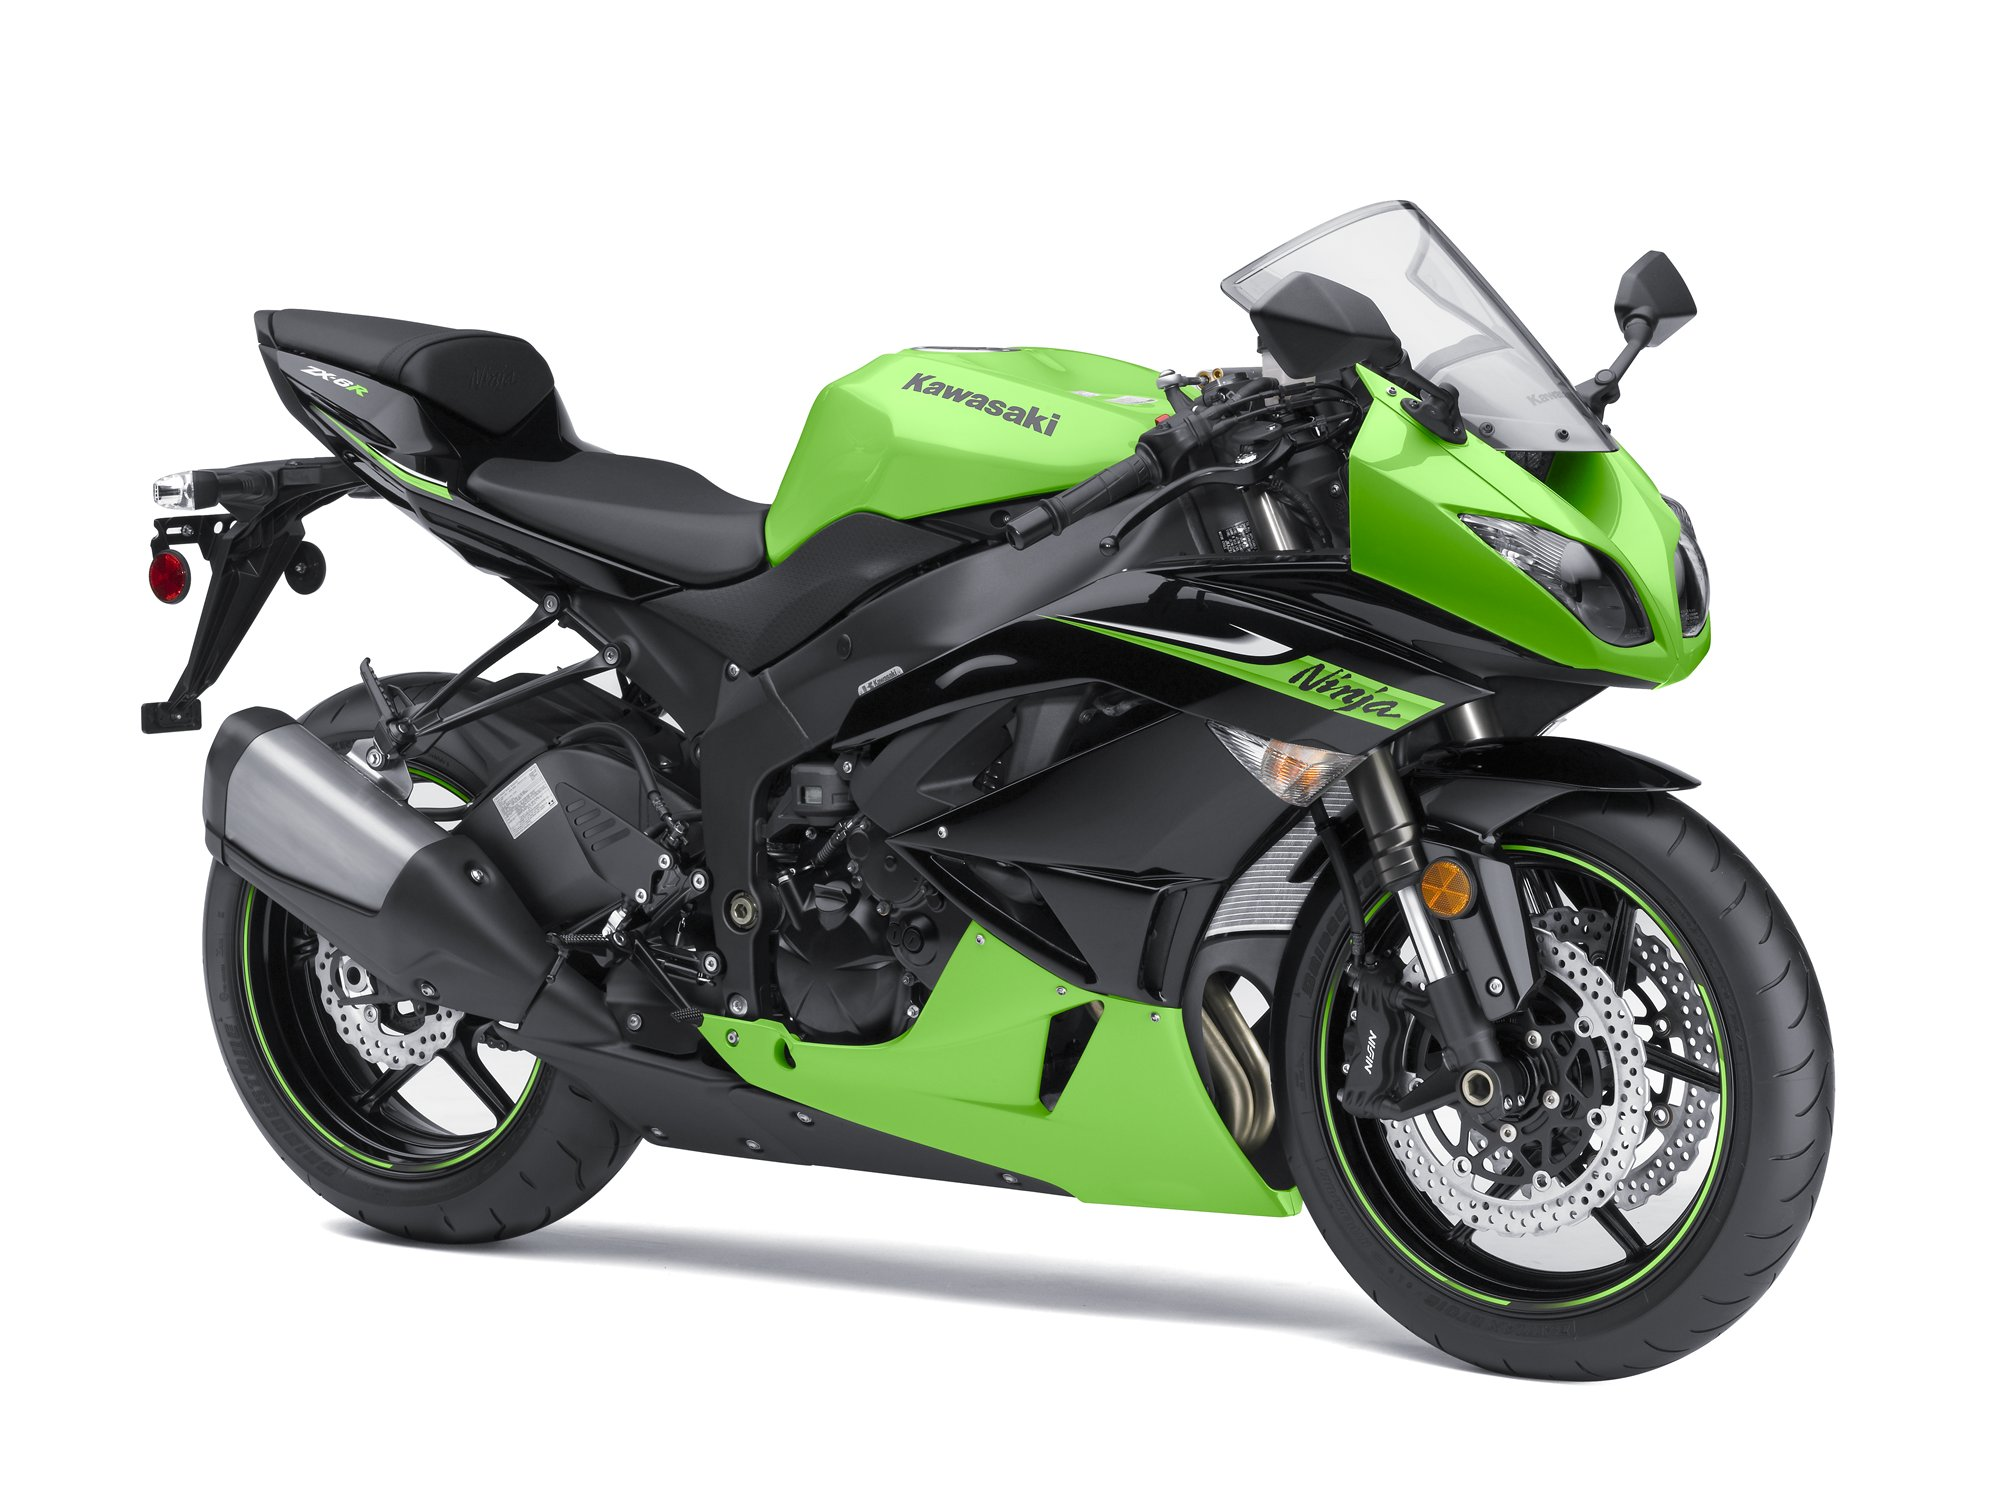 2010 Kawasaki Ninja ZX-6R | Top Speed